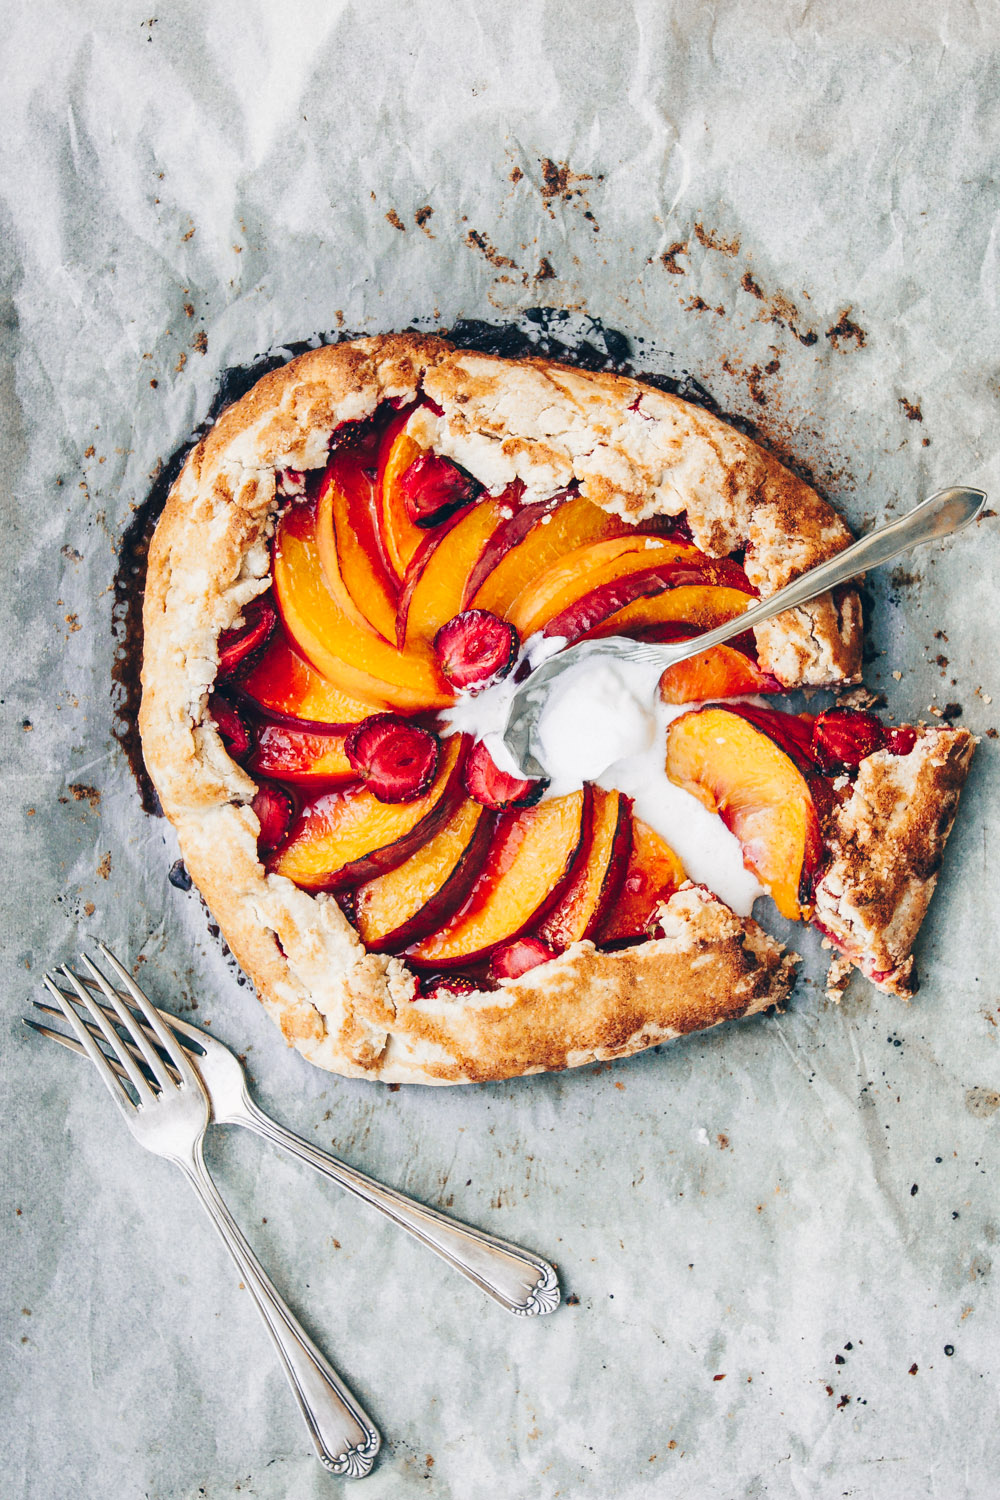 Peach and Strawberry 3 Ways - 3 different recipes with peaches and strawberries. Vegan Peach and Strawberry Galette